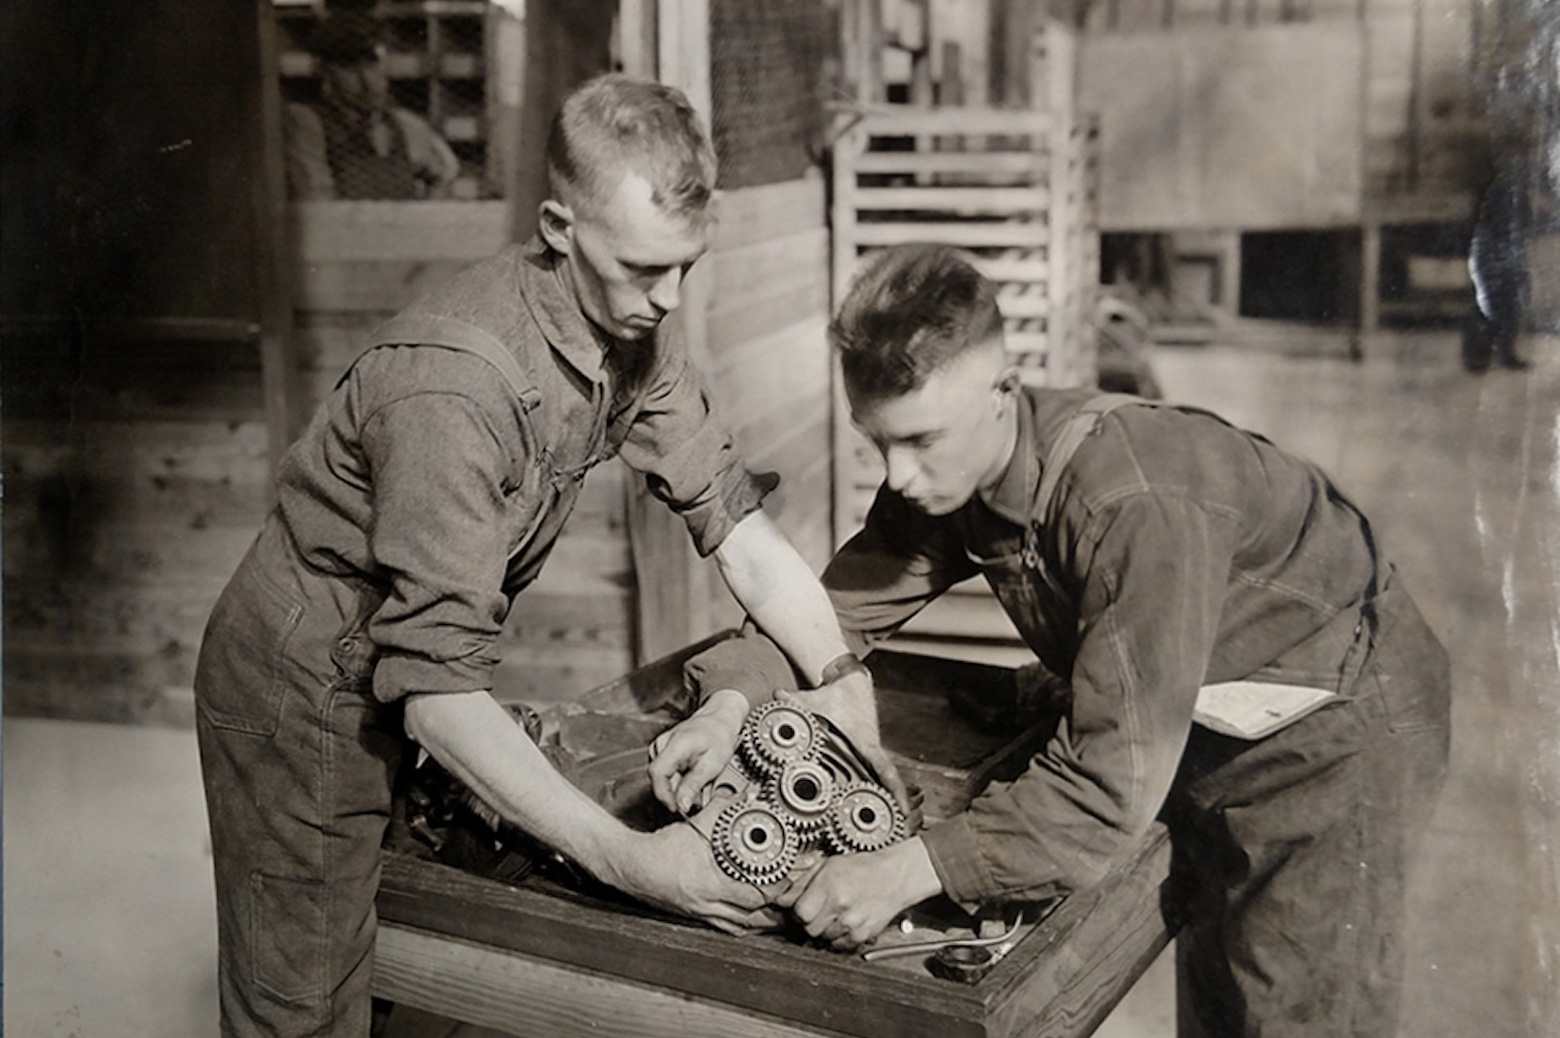 2 men working on with car part